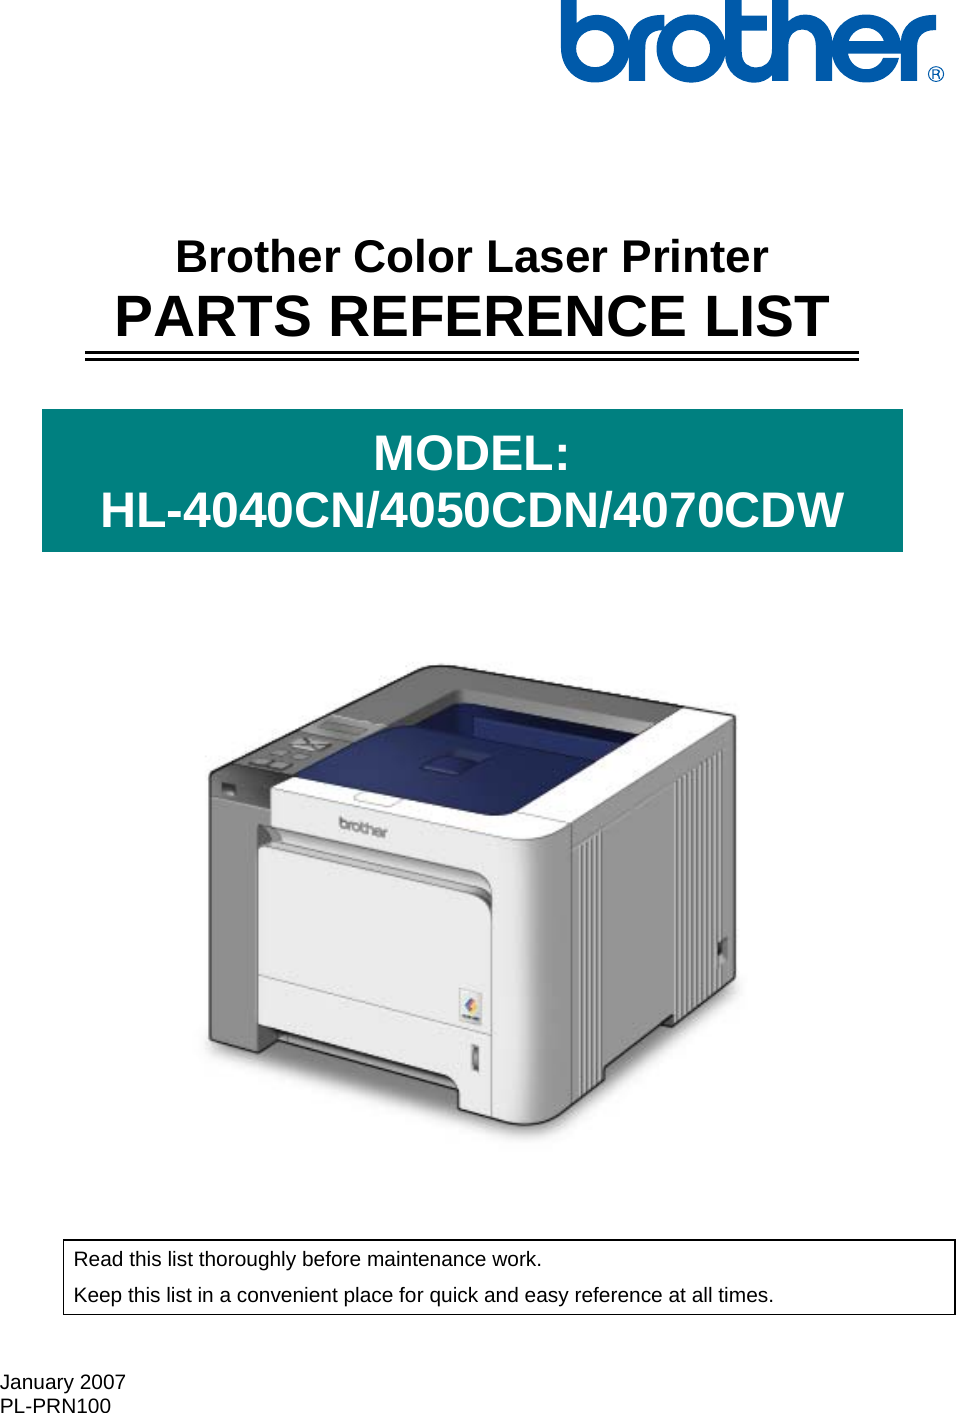 BROTHER HL-4070CDW SERIES CUPS DRIVER FOR WINDOWS MAC